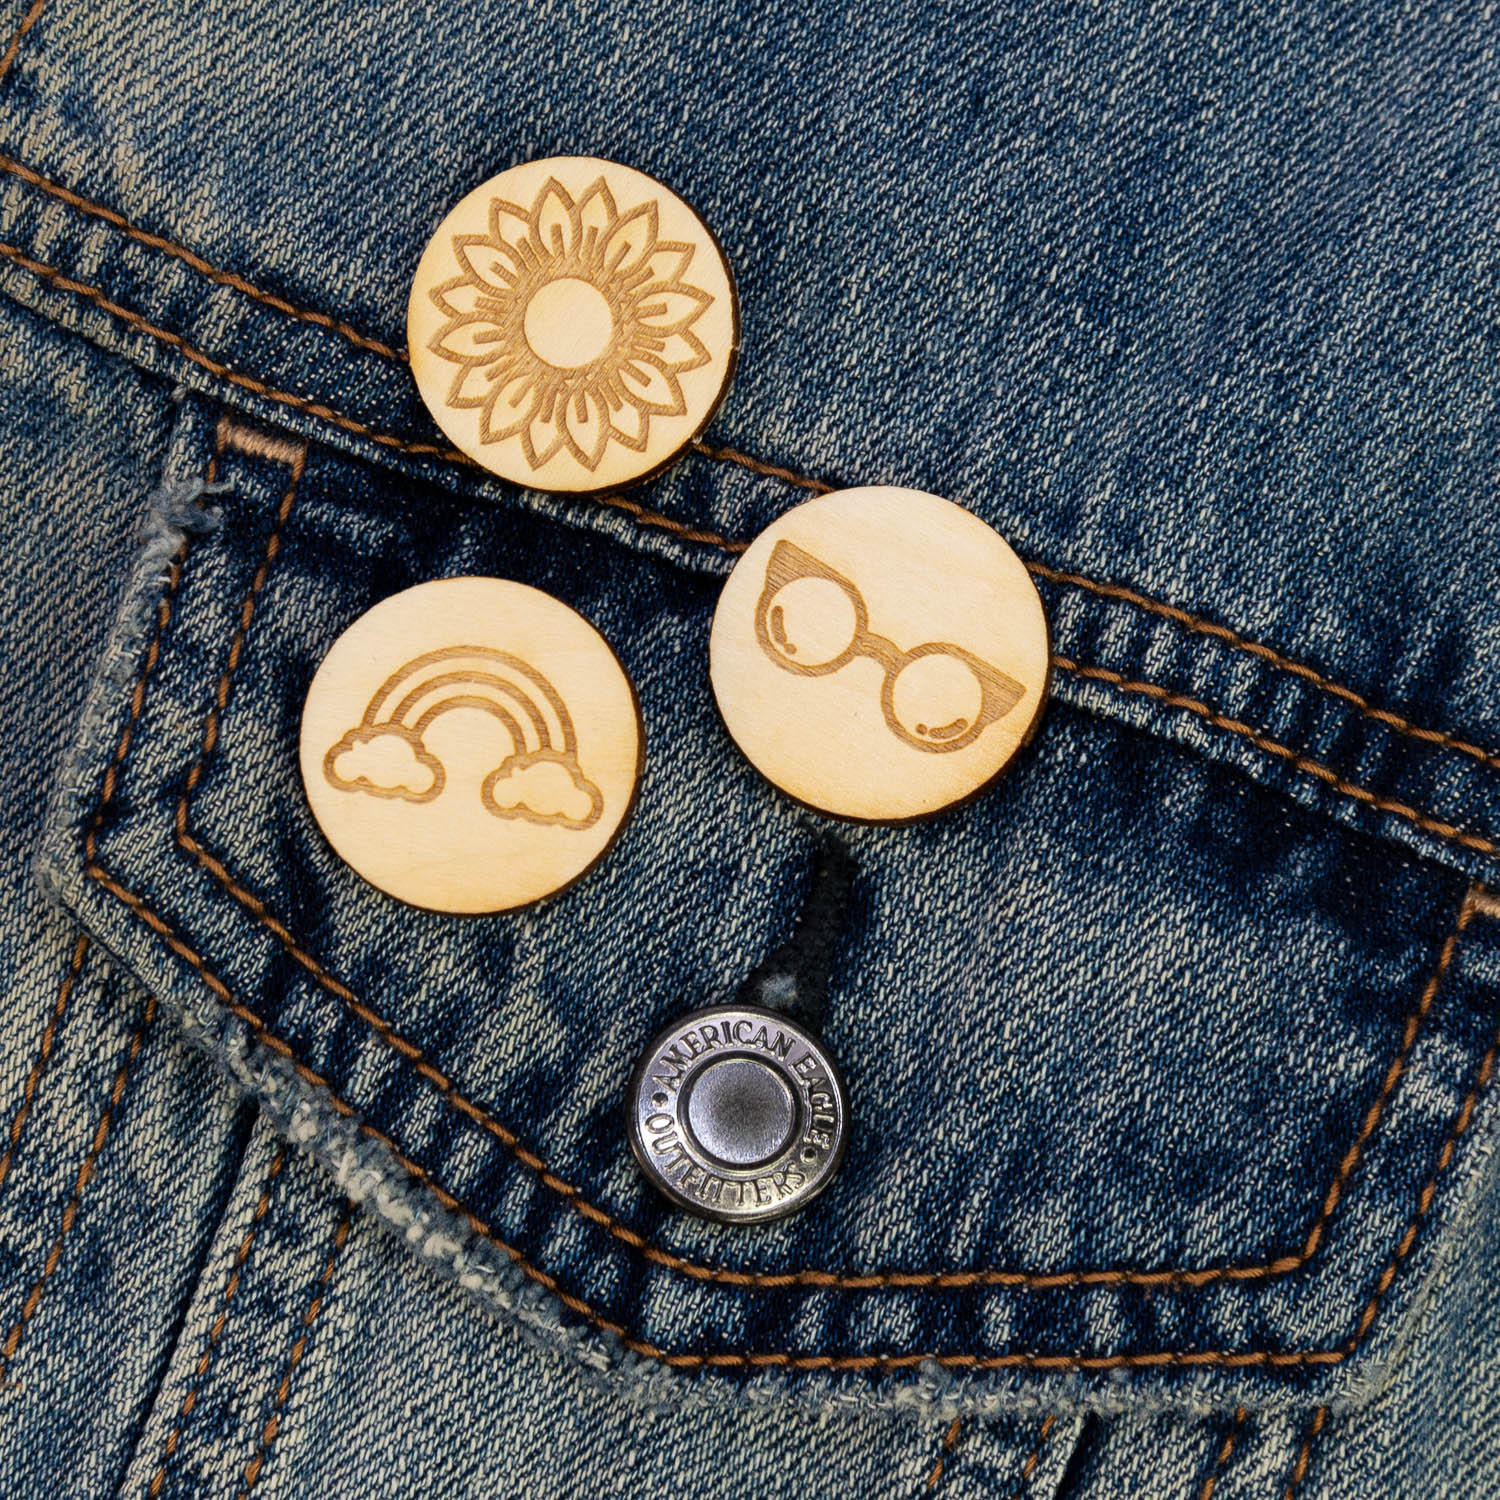 What:  Lapel pins |  Material:  wood